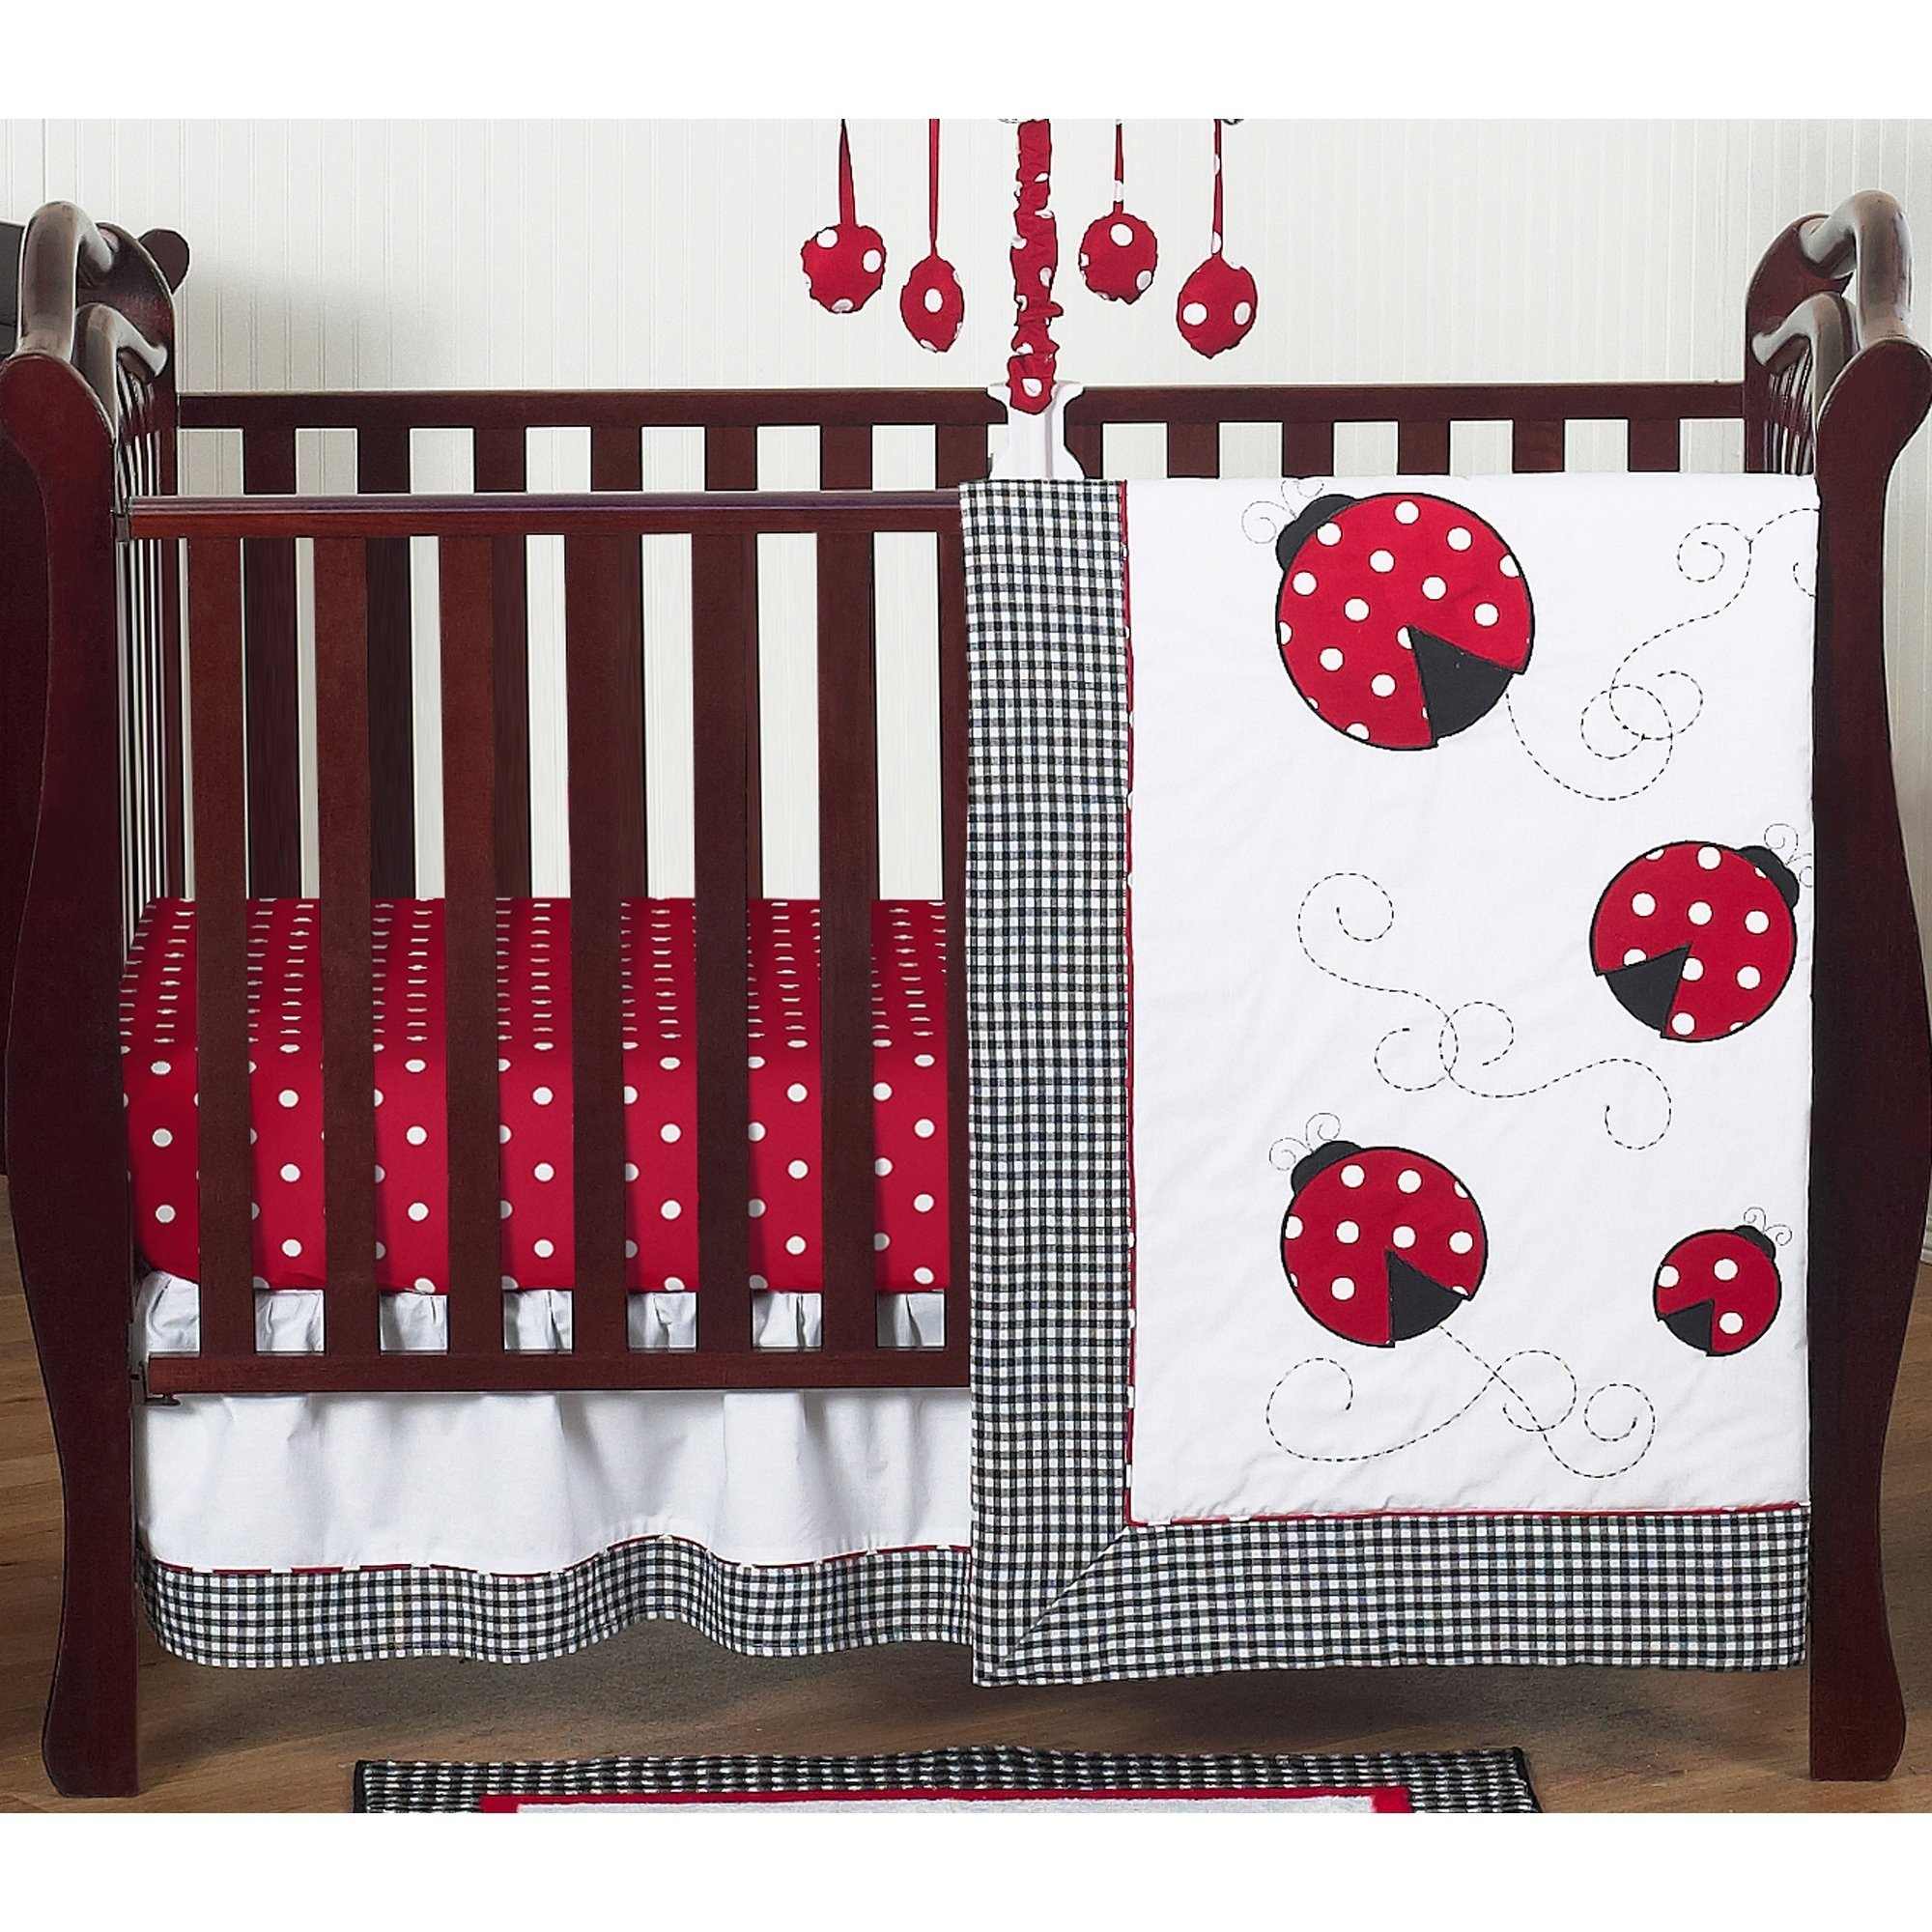 Sweet Jojo Designs Red And Black Little Ladybug 4 Piece Bumperless Crib Bedding Set Multi Cotton Polka Dot Bumperless Crib Bedding Girl Crib Bedding Sets